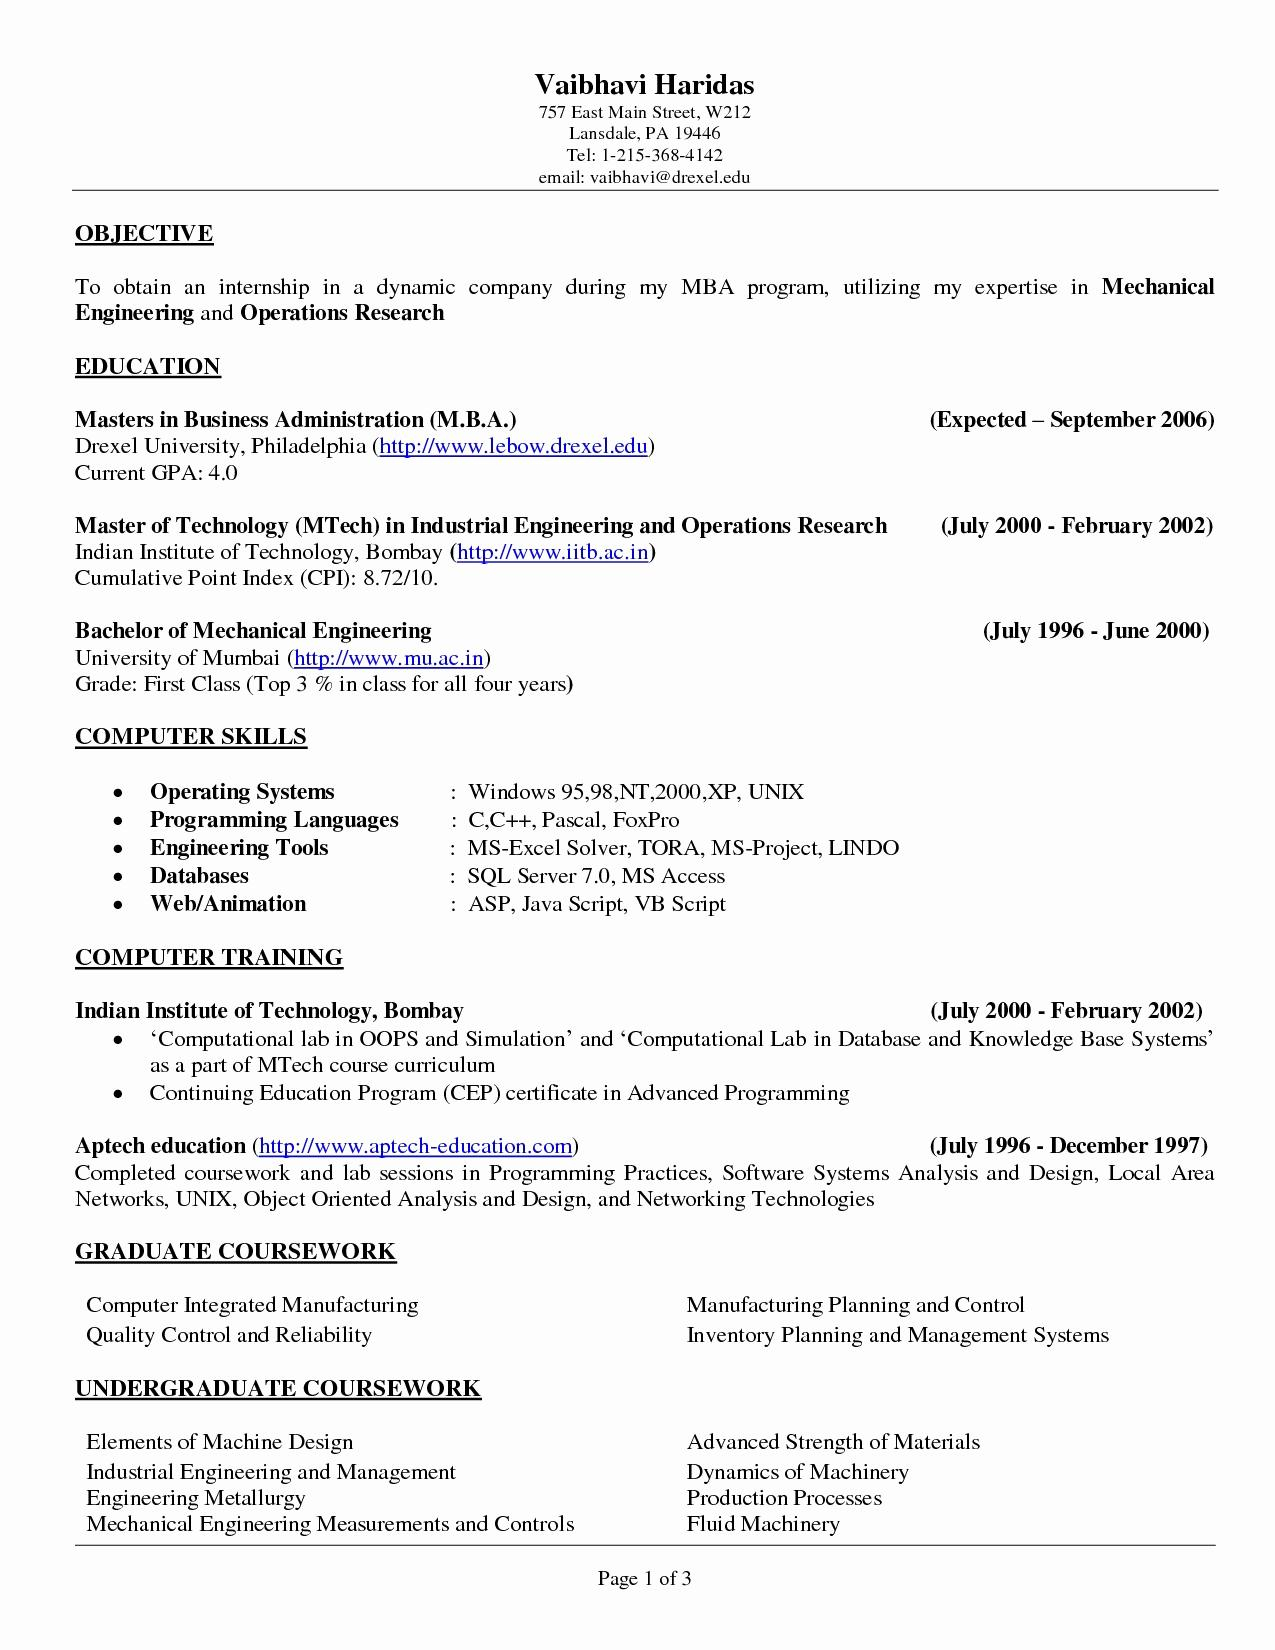 Resume Best Practices - Resume Mission Statement Examples Best Best Sample College